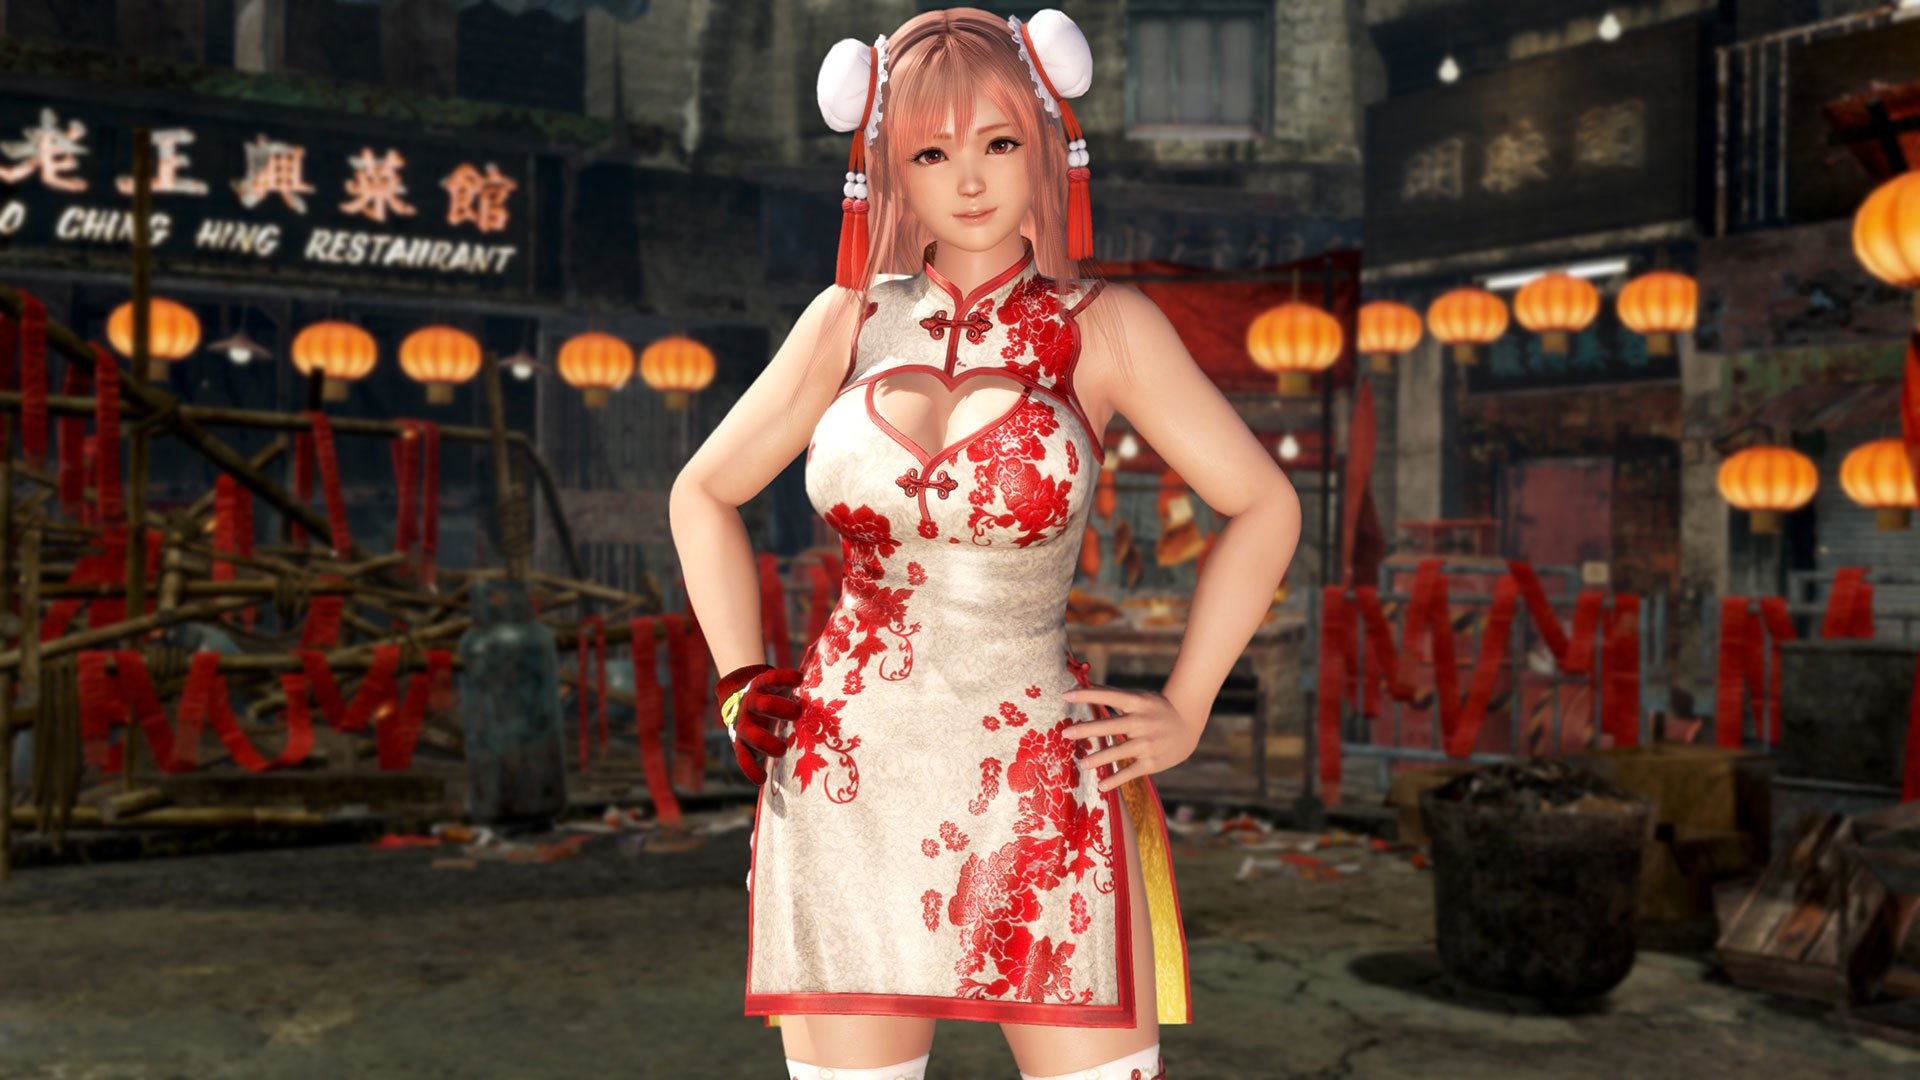 Dead Or Alive 6 Hd Wallpaper Background Image 1920x1080 Id